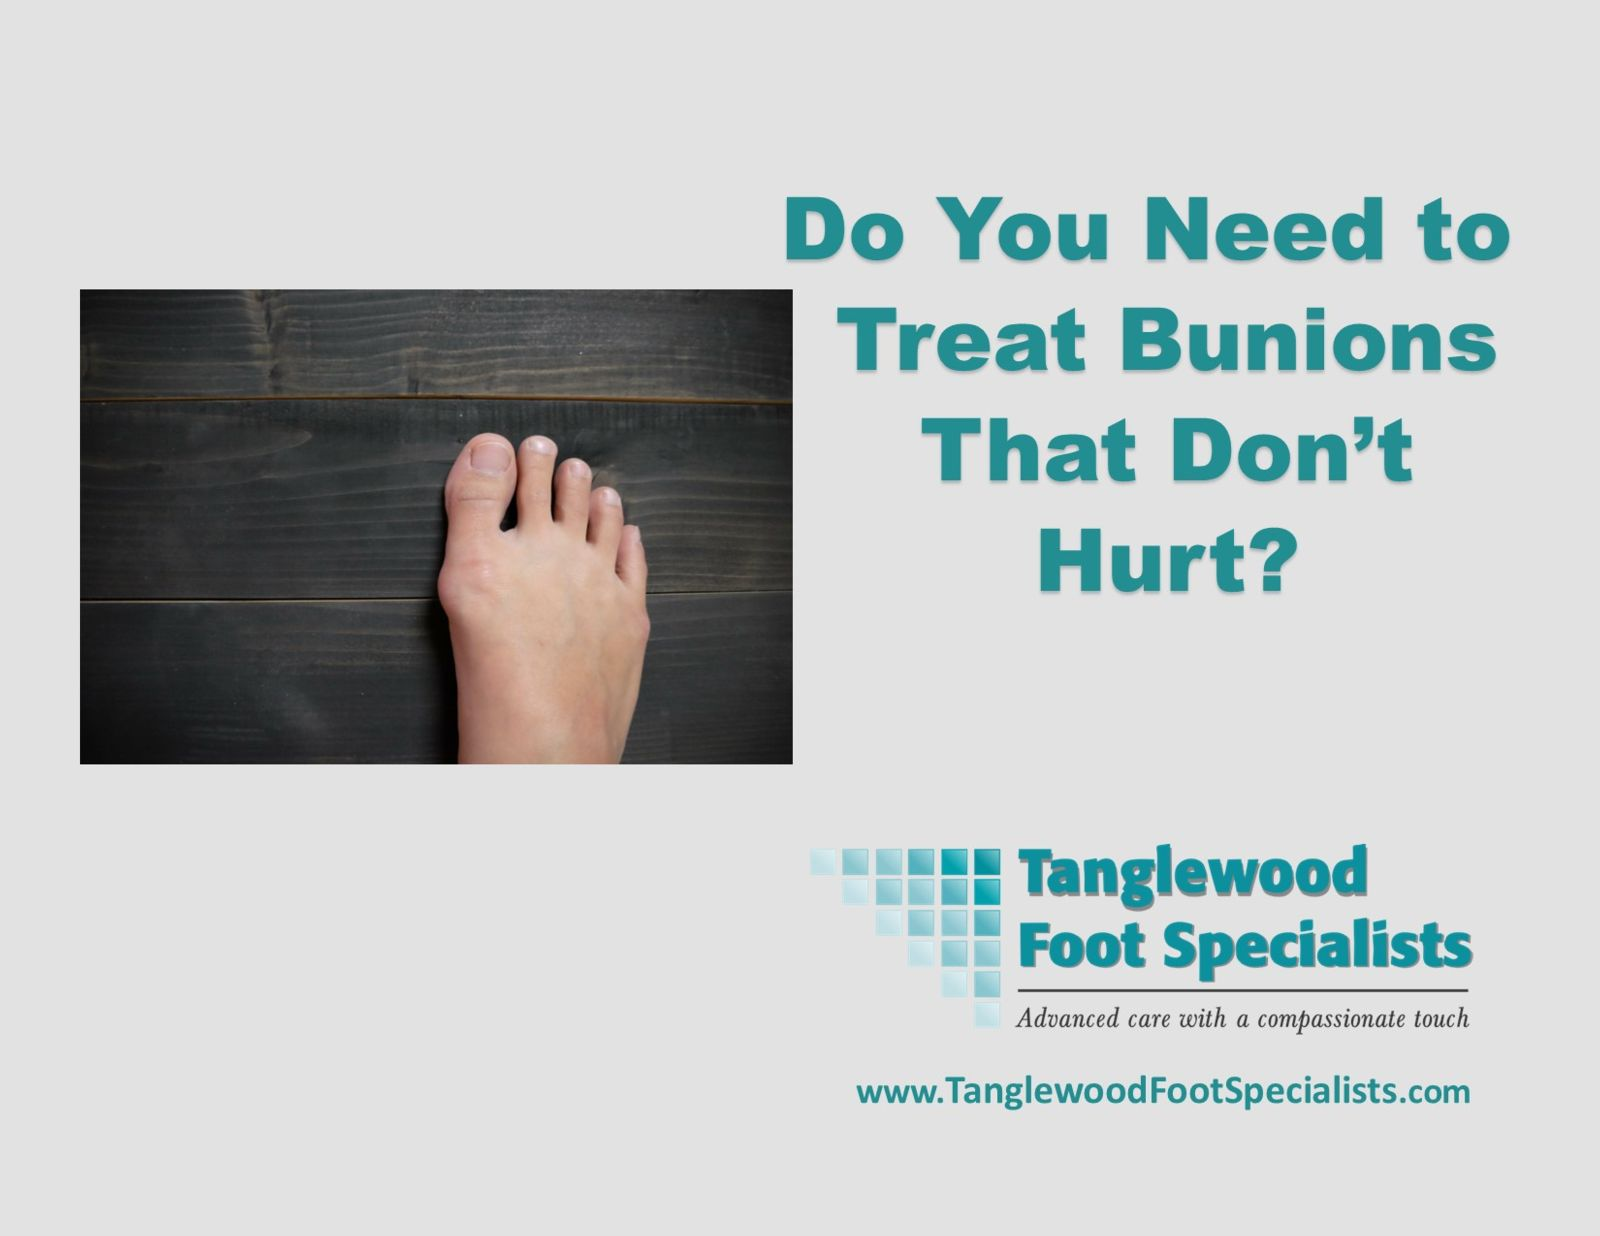 Houston podiatrist recommends treating bunions that don't hurt with custom orthotics